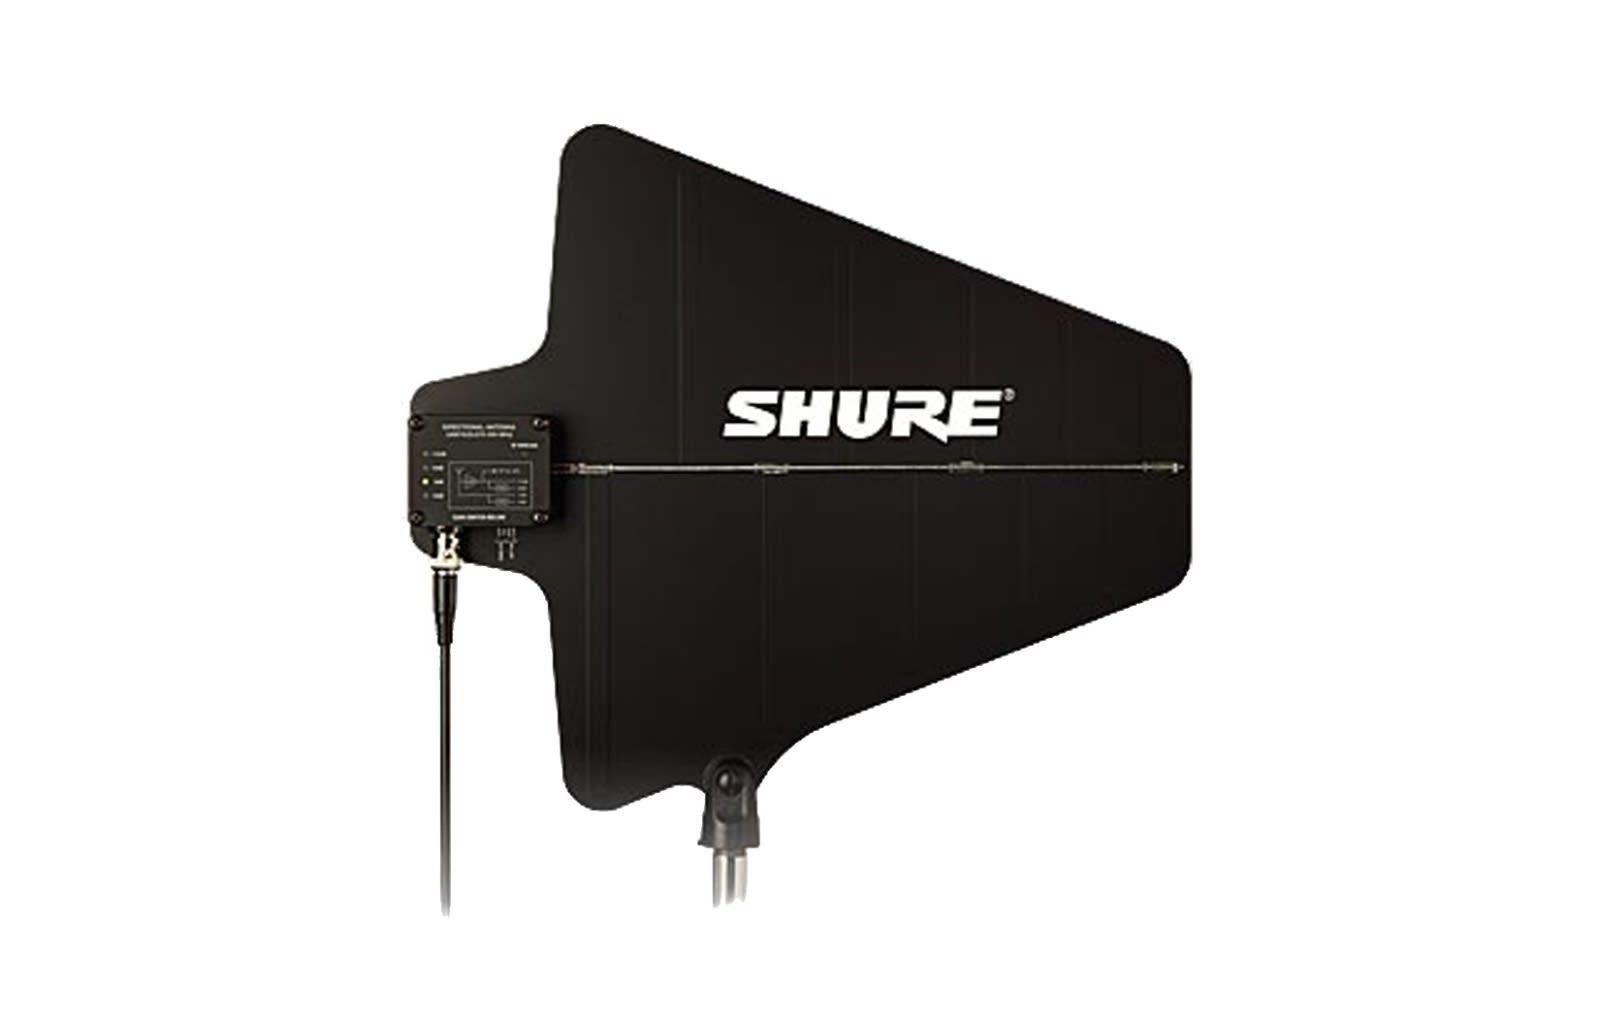 Shure UA874US Active Directional UHF Antenna with integrated amplifier (470-698MHz)